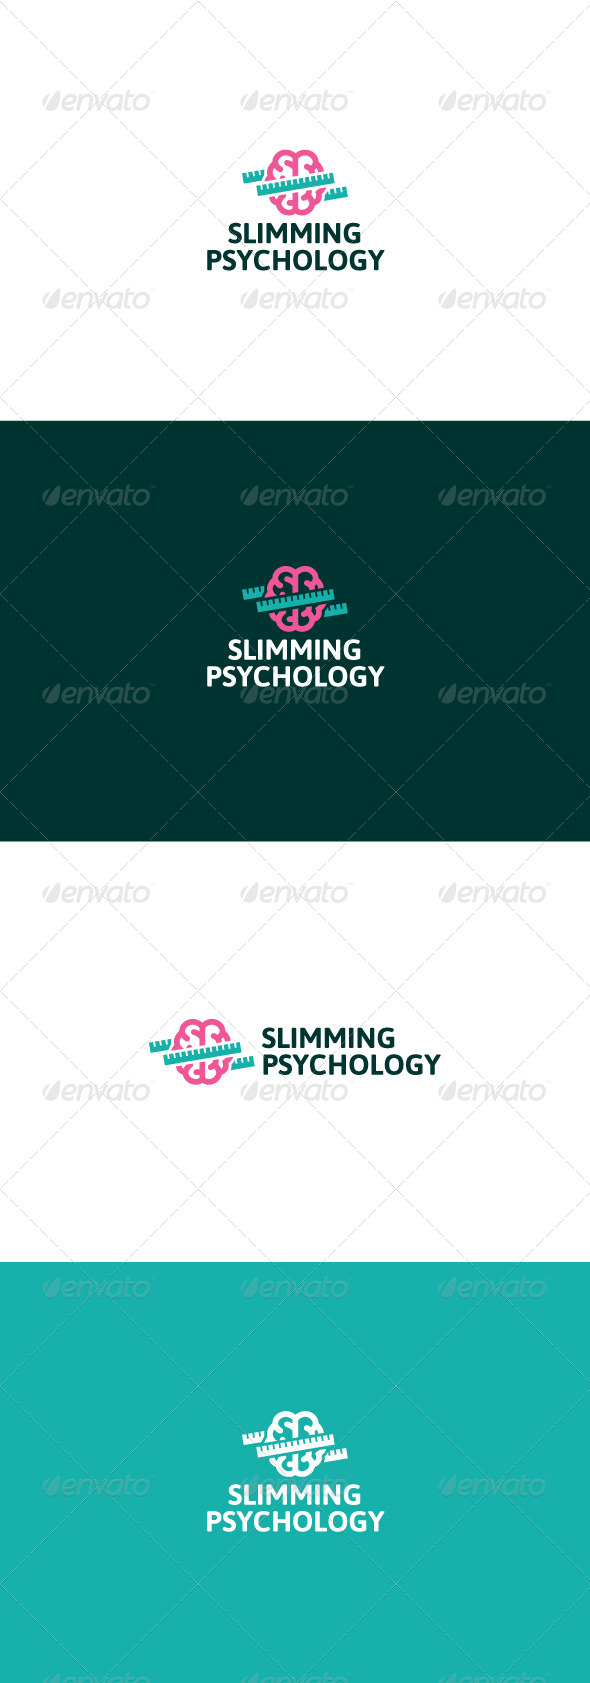 GraphicRiver Slimming Psychology Logo 8469810